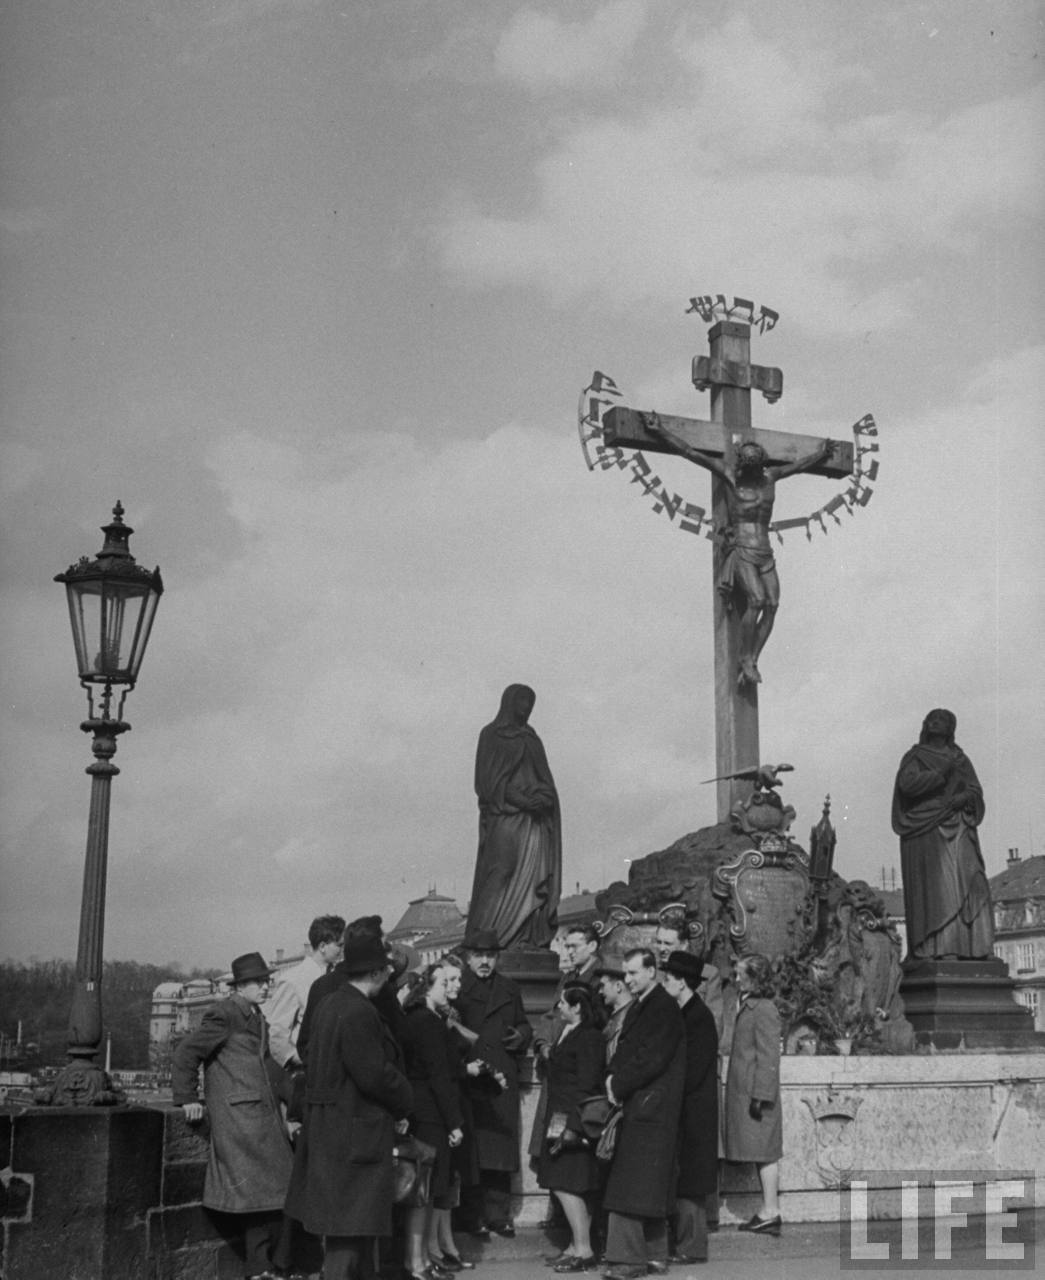 Charles University history class studying crucifix on historic Charles Bridge.